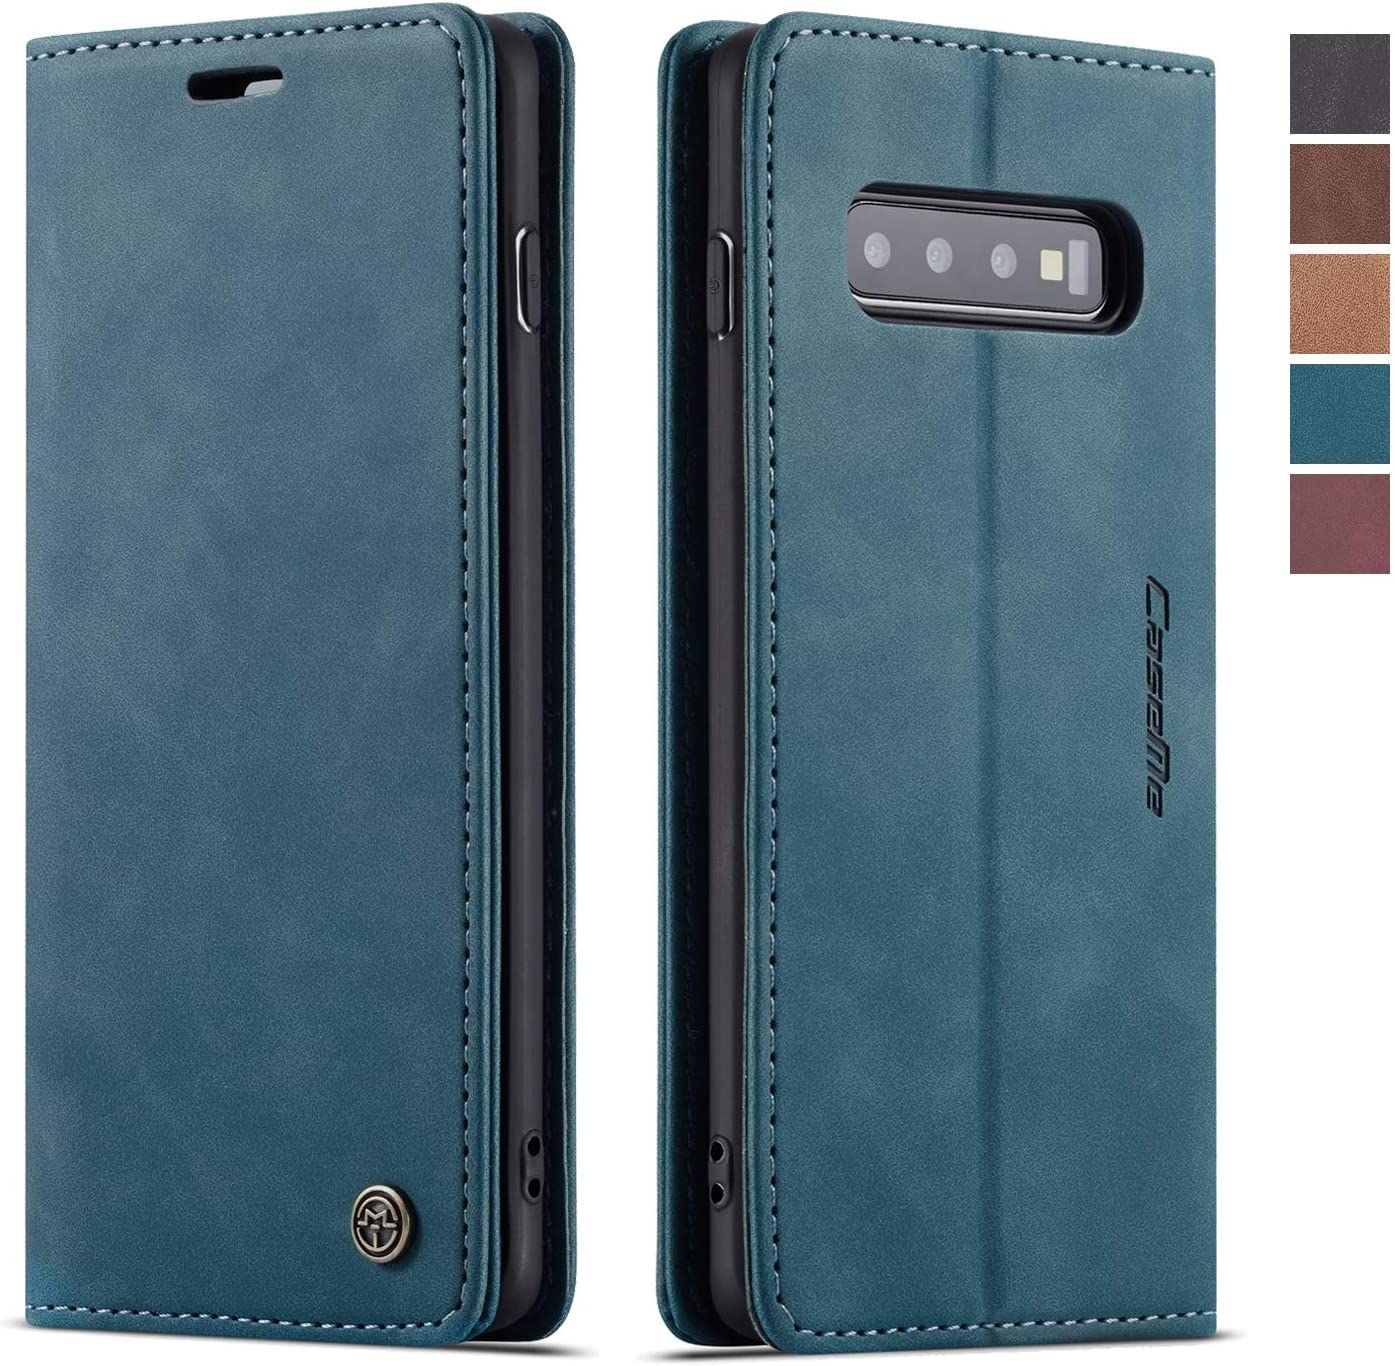 Samsung Galaxy S10 Case,Samsung Galaxy S10 Wallet Case, Magnetic Stand Flip Protective Cover Leather Flip Cover Purse Style with ID & Credit Card Slots Holder Case for Samsung Galaxy S10 (Blue)